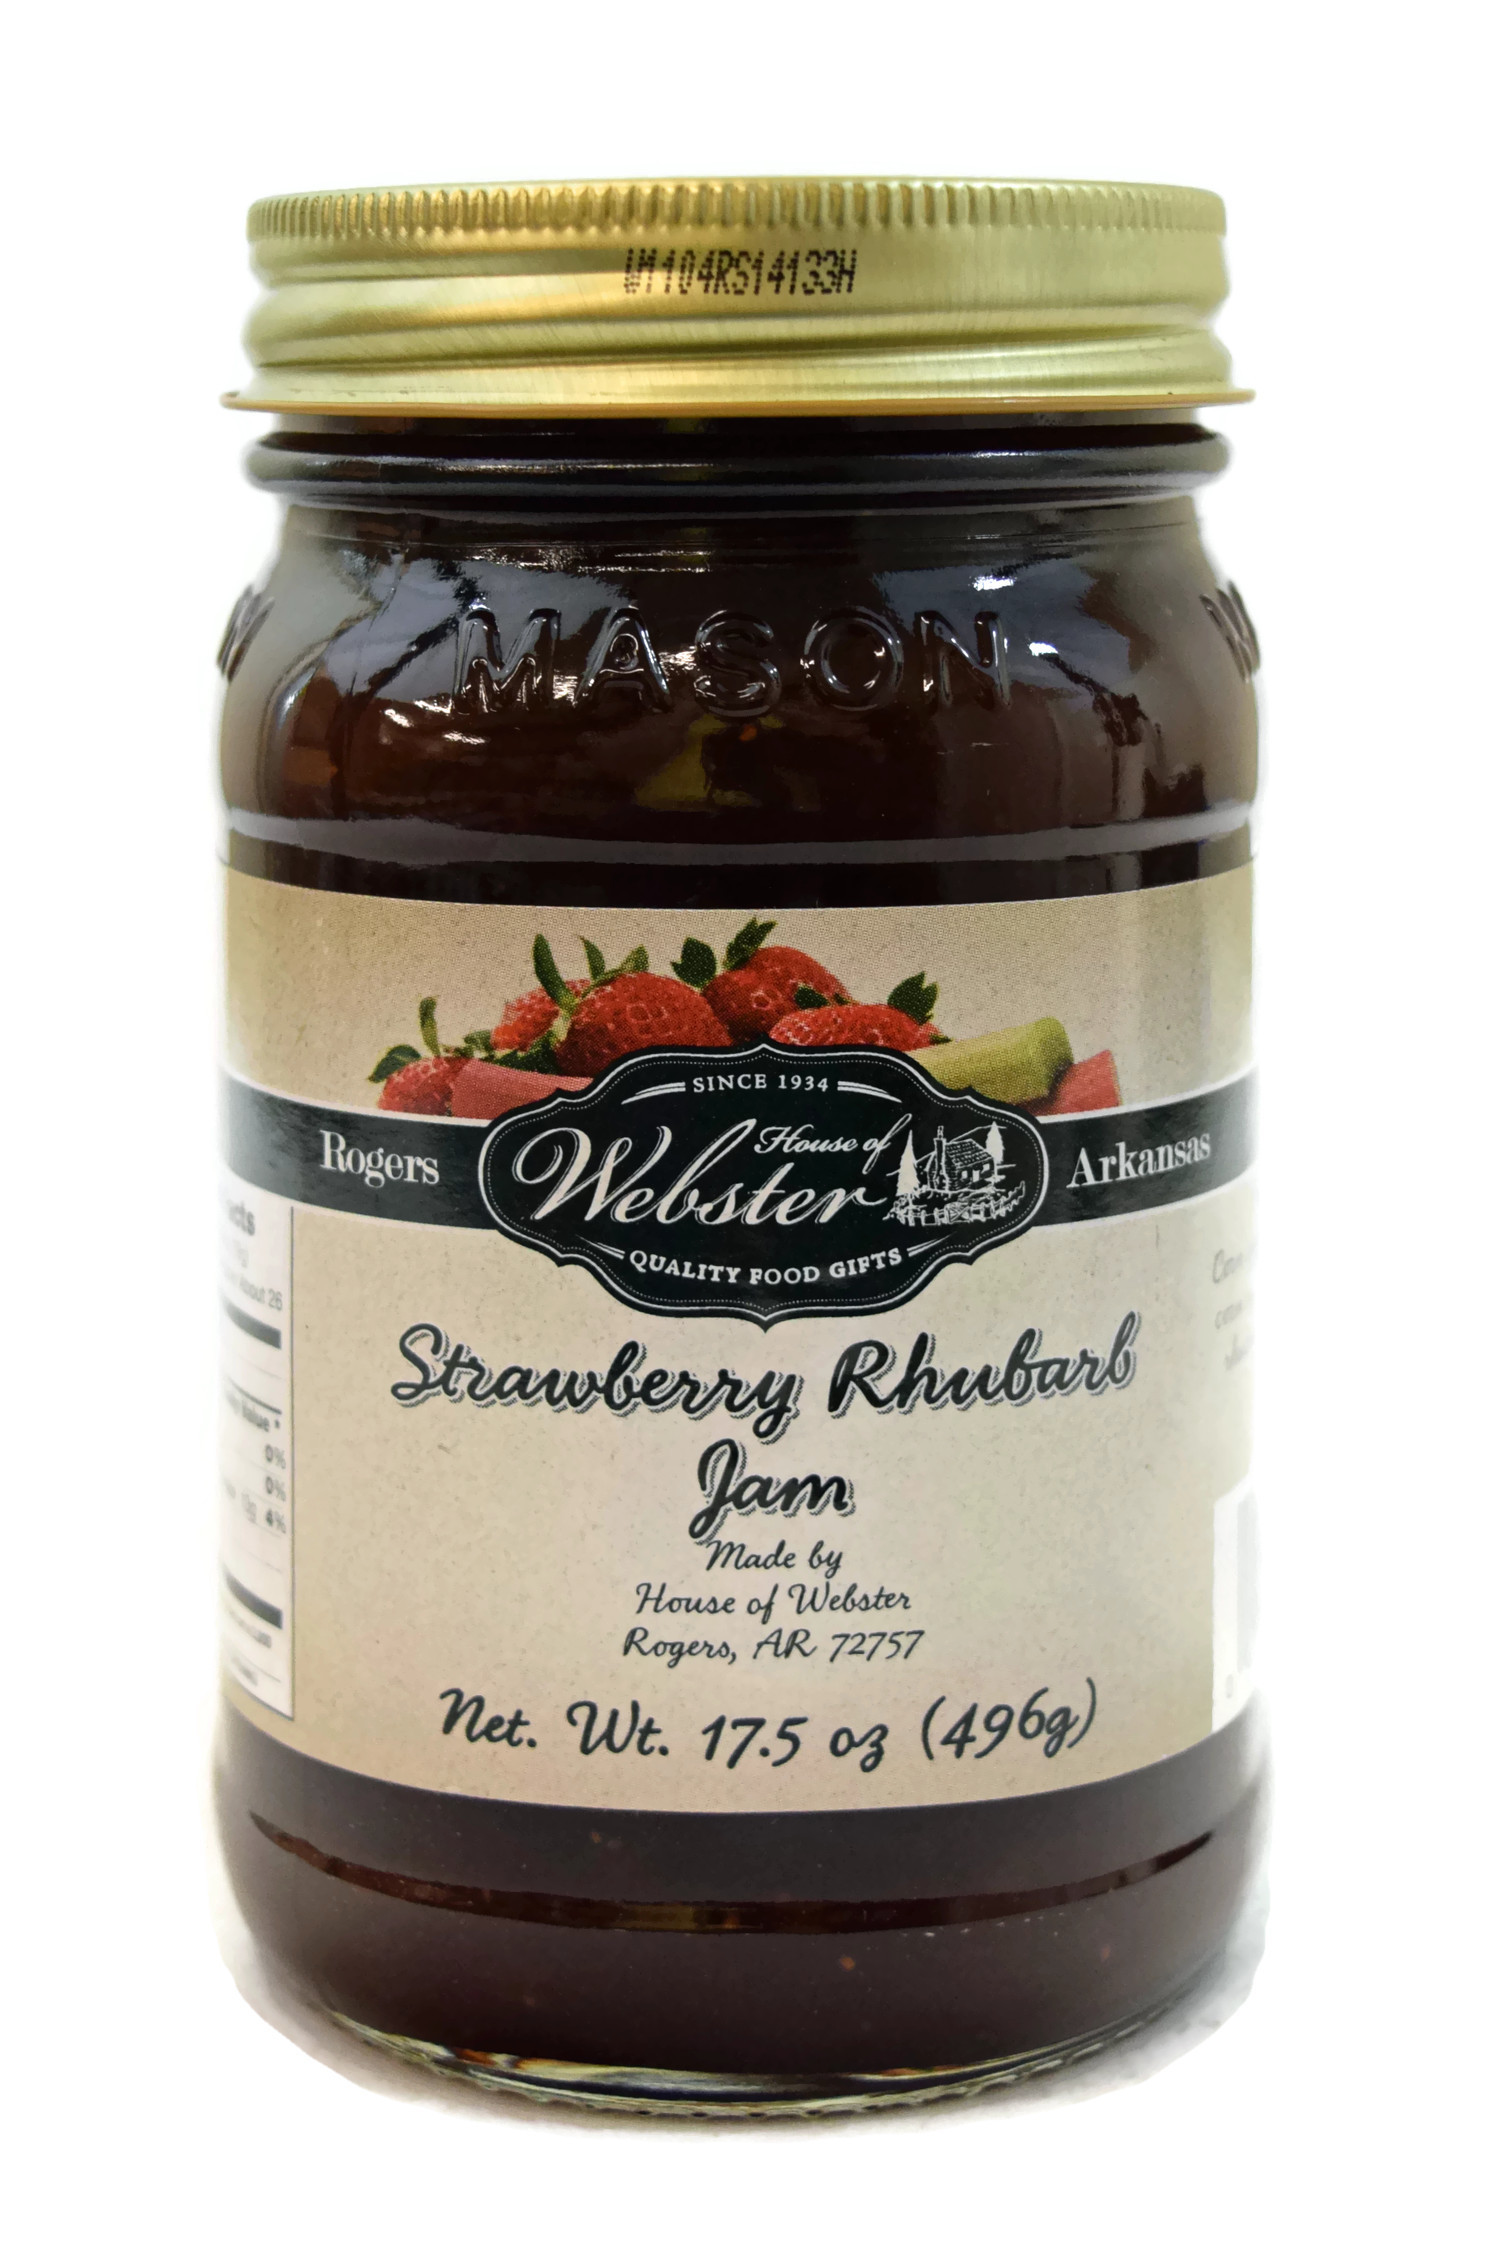 House of Webster Strawberry Rhubarb Jam 17.5 oz by House of Webster